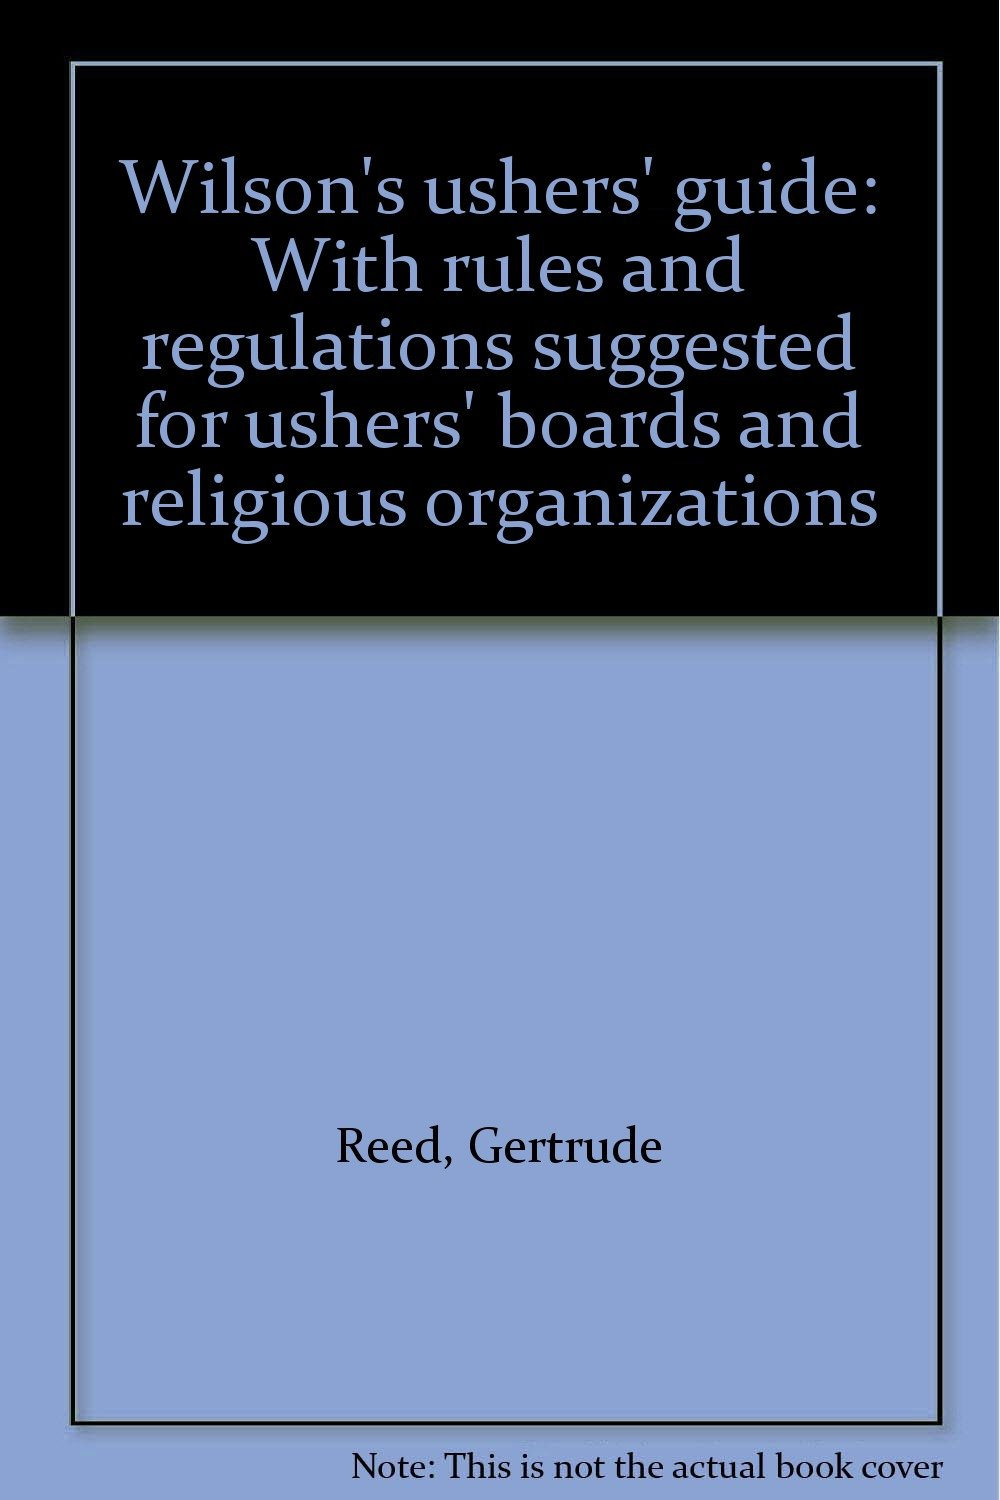 Wilson's ushers' guide: With rules and regulations suggested for ushers'  boards and religious organizations: Gertrude Reed: Amazon.com: Books